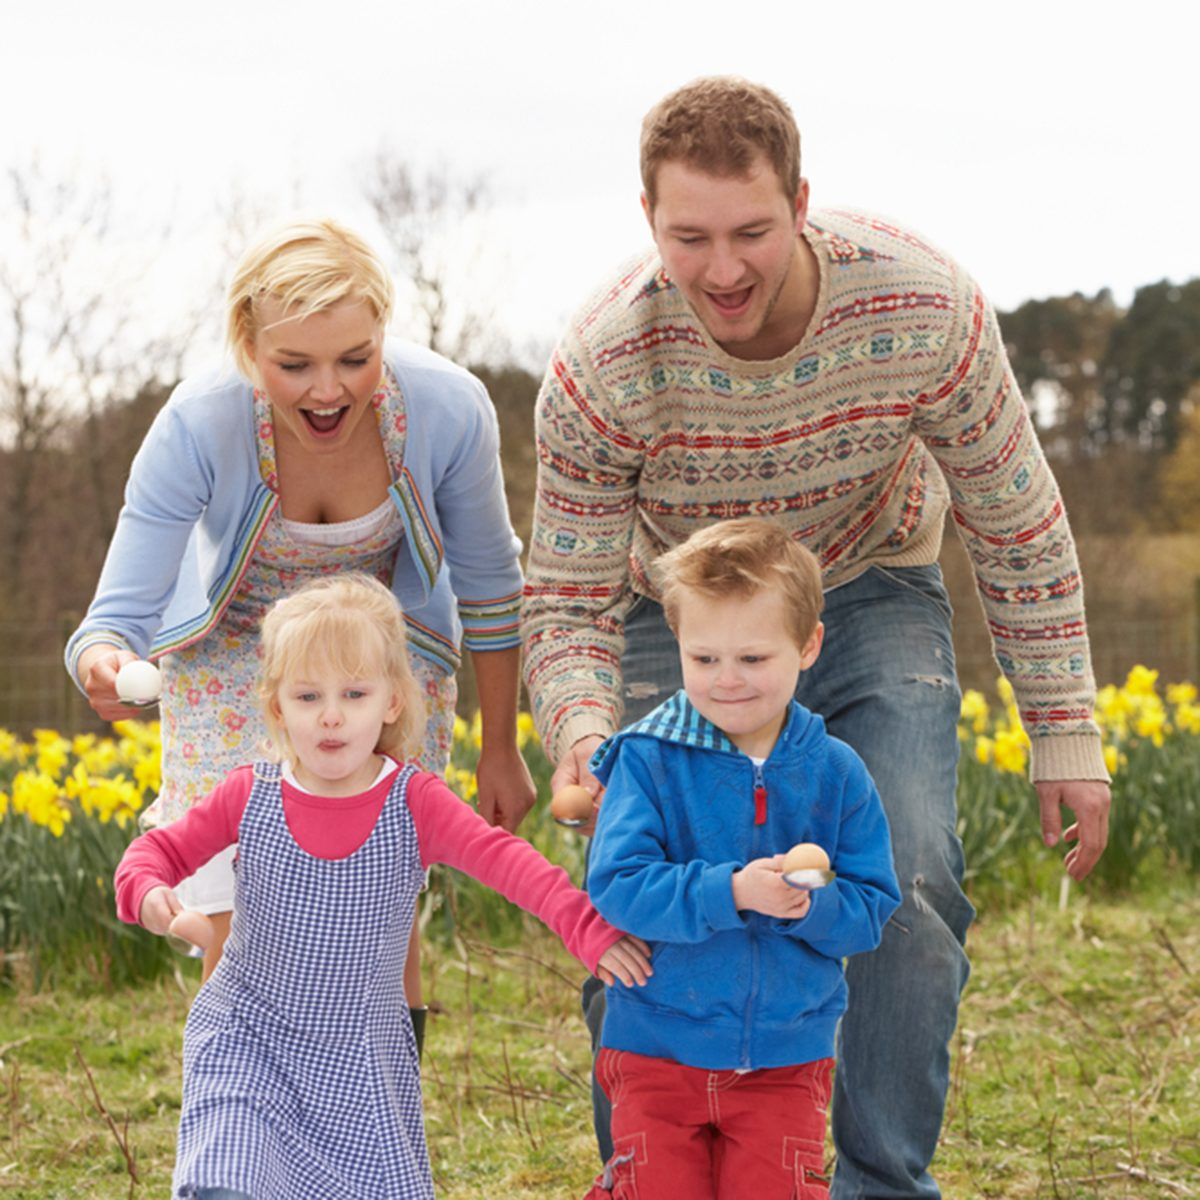 Family Having Egg And Spoon Race; Shutterstock ID 60510538